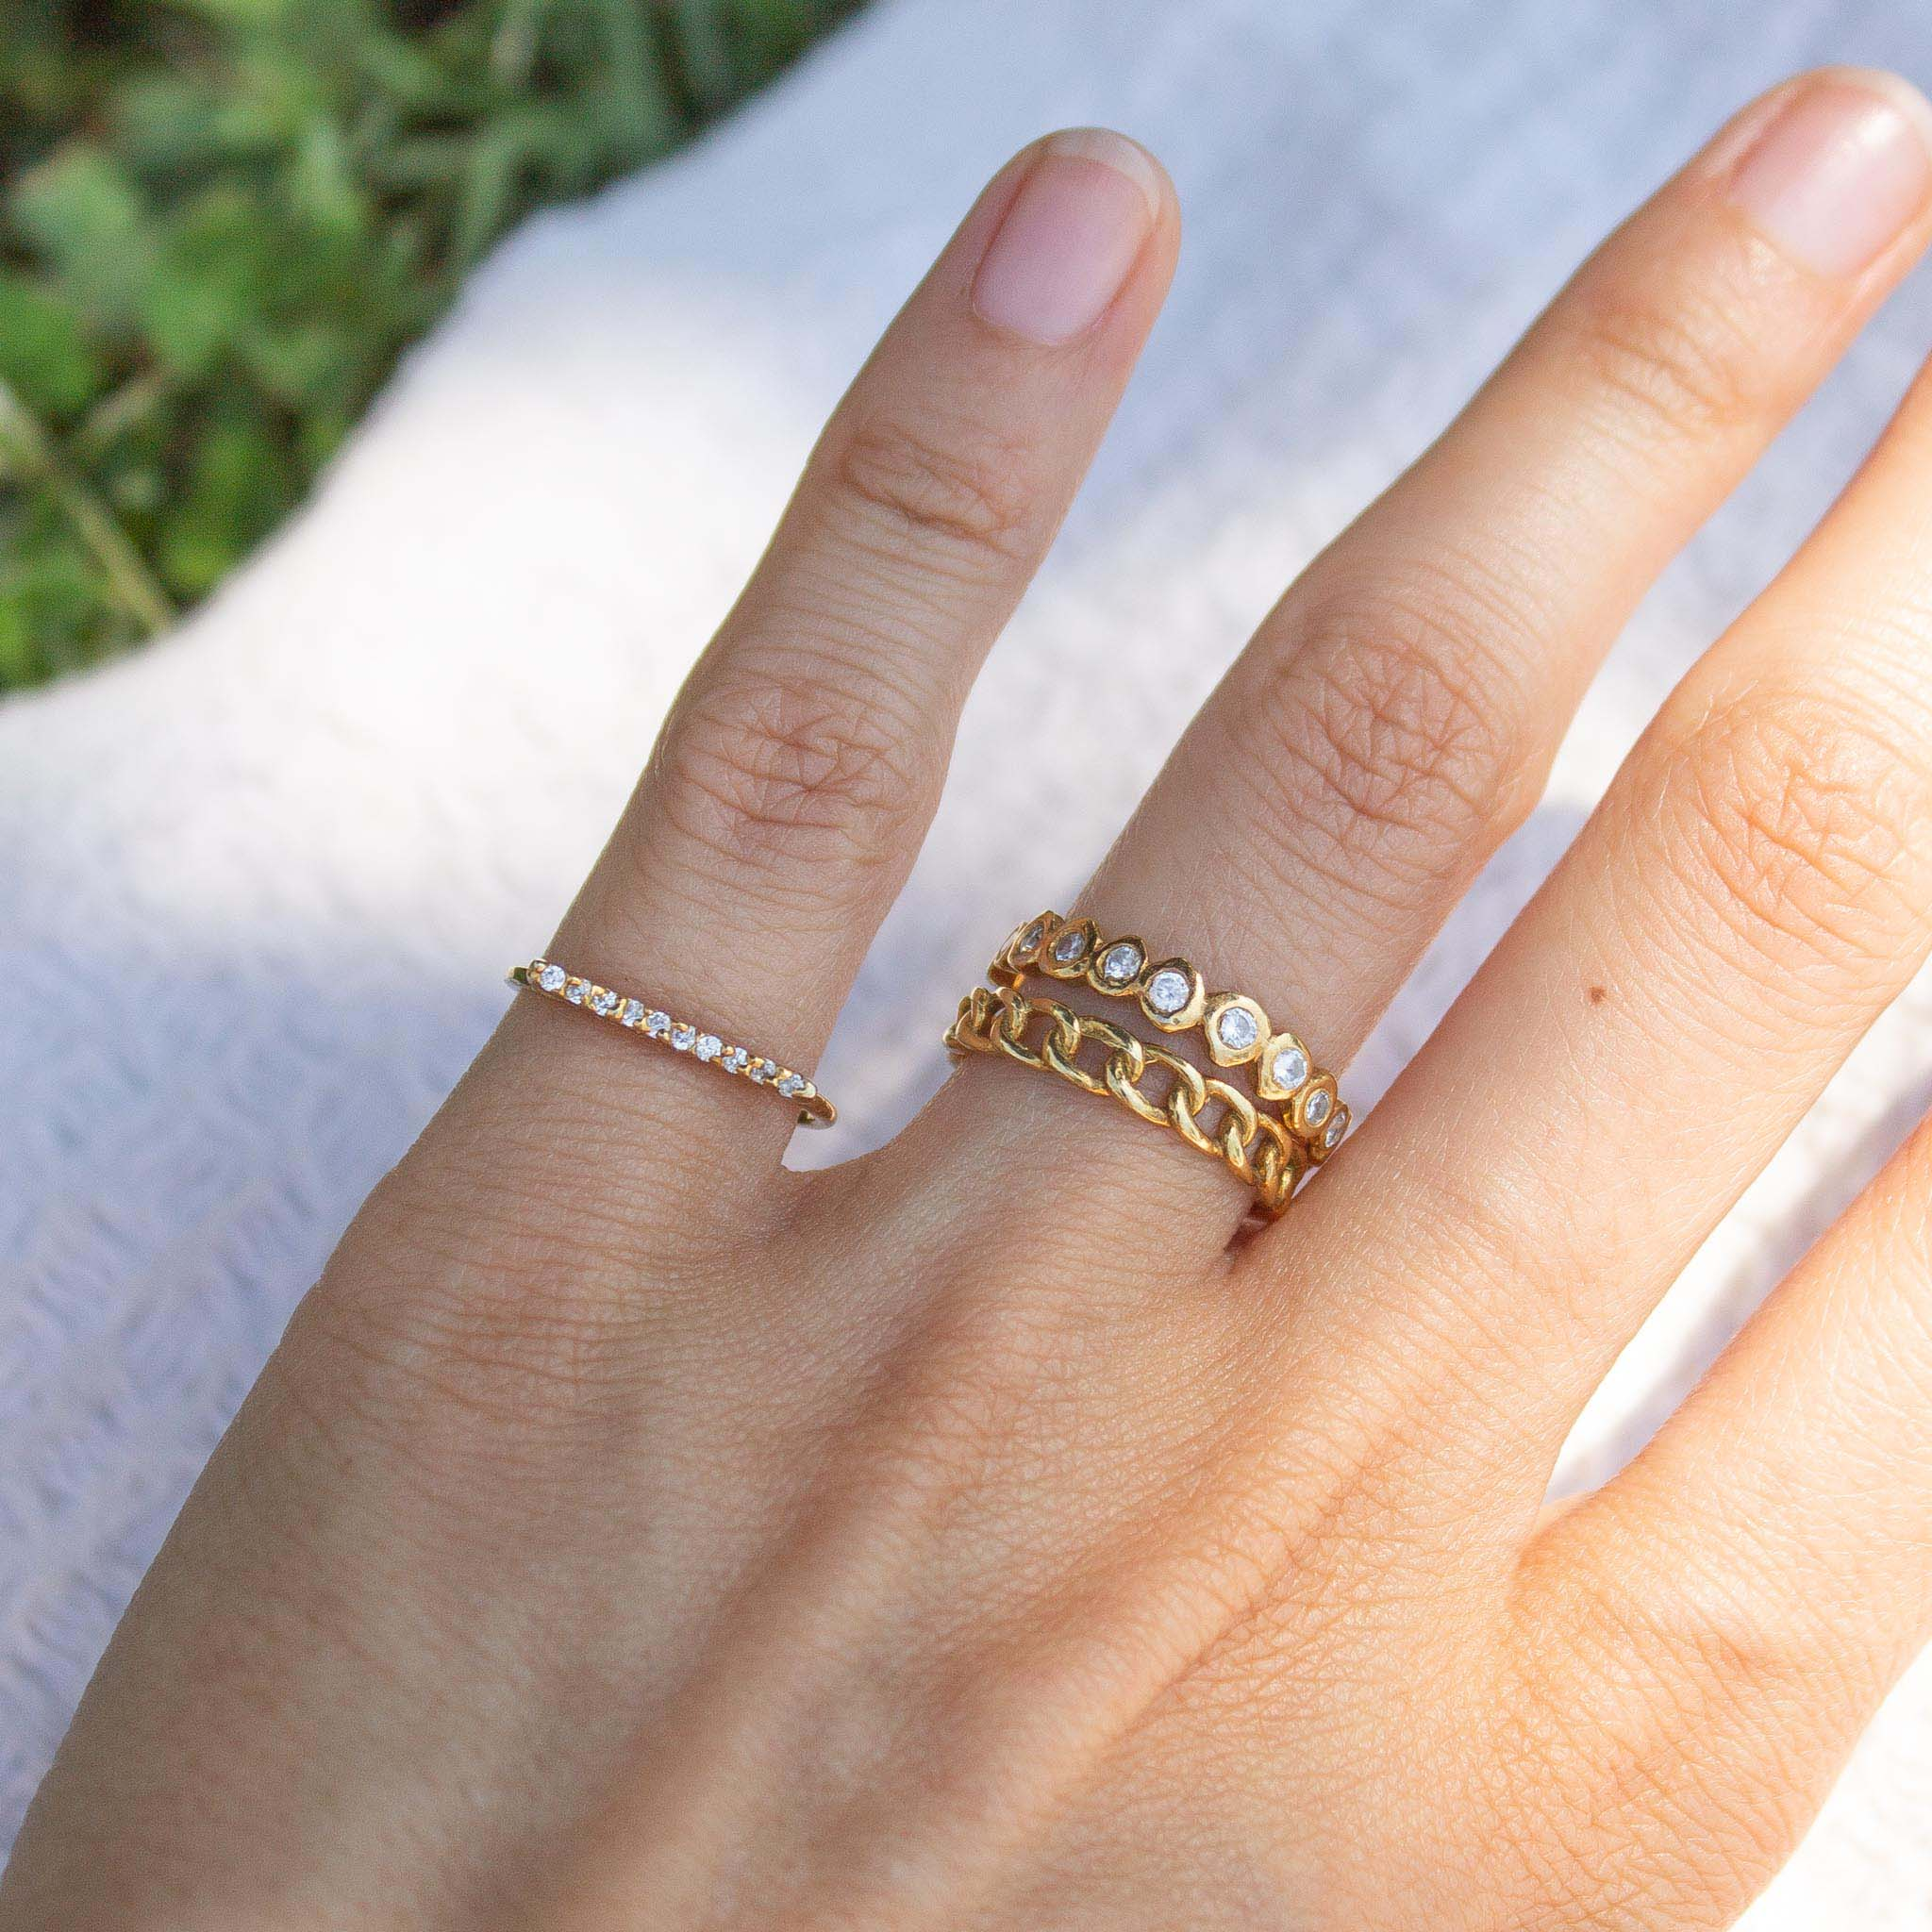 Sparkly stacking ring idea